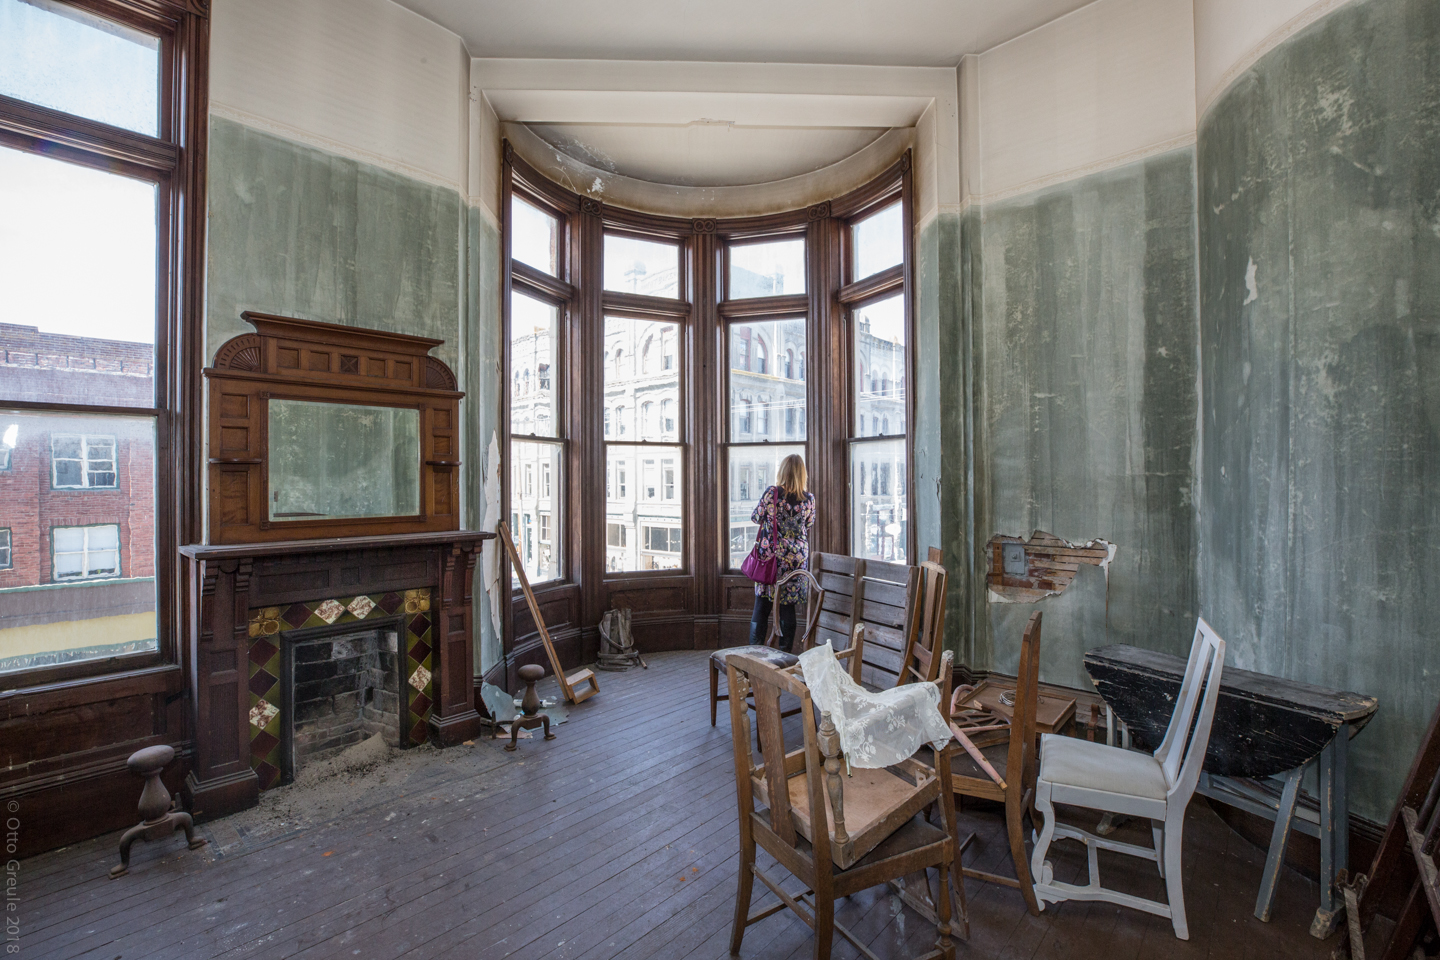 A participant in the RevitalizeWA Historic Preservation conference tours a second floor office space of the Hastings Building. Designed by Elmer H. Fisher, the building was constructed between 1889-90.